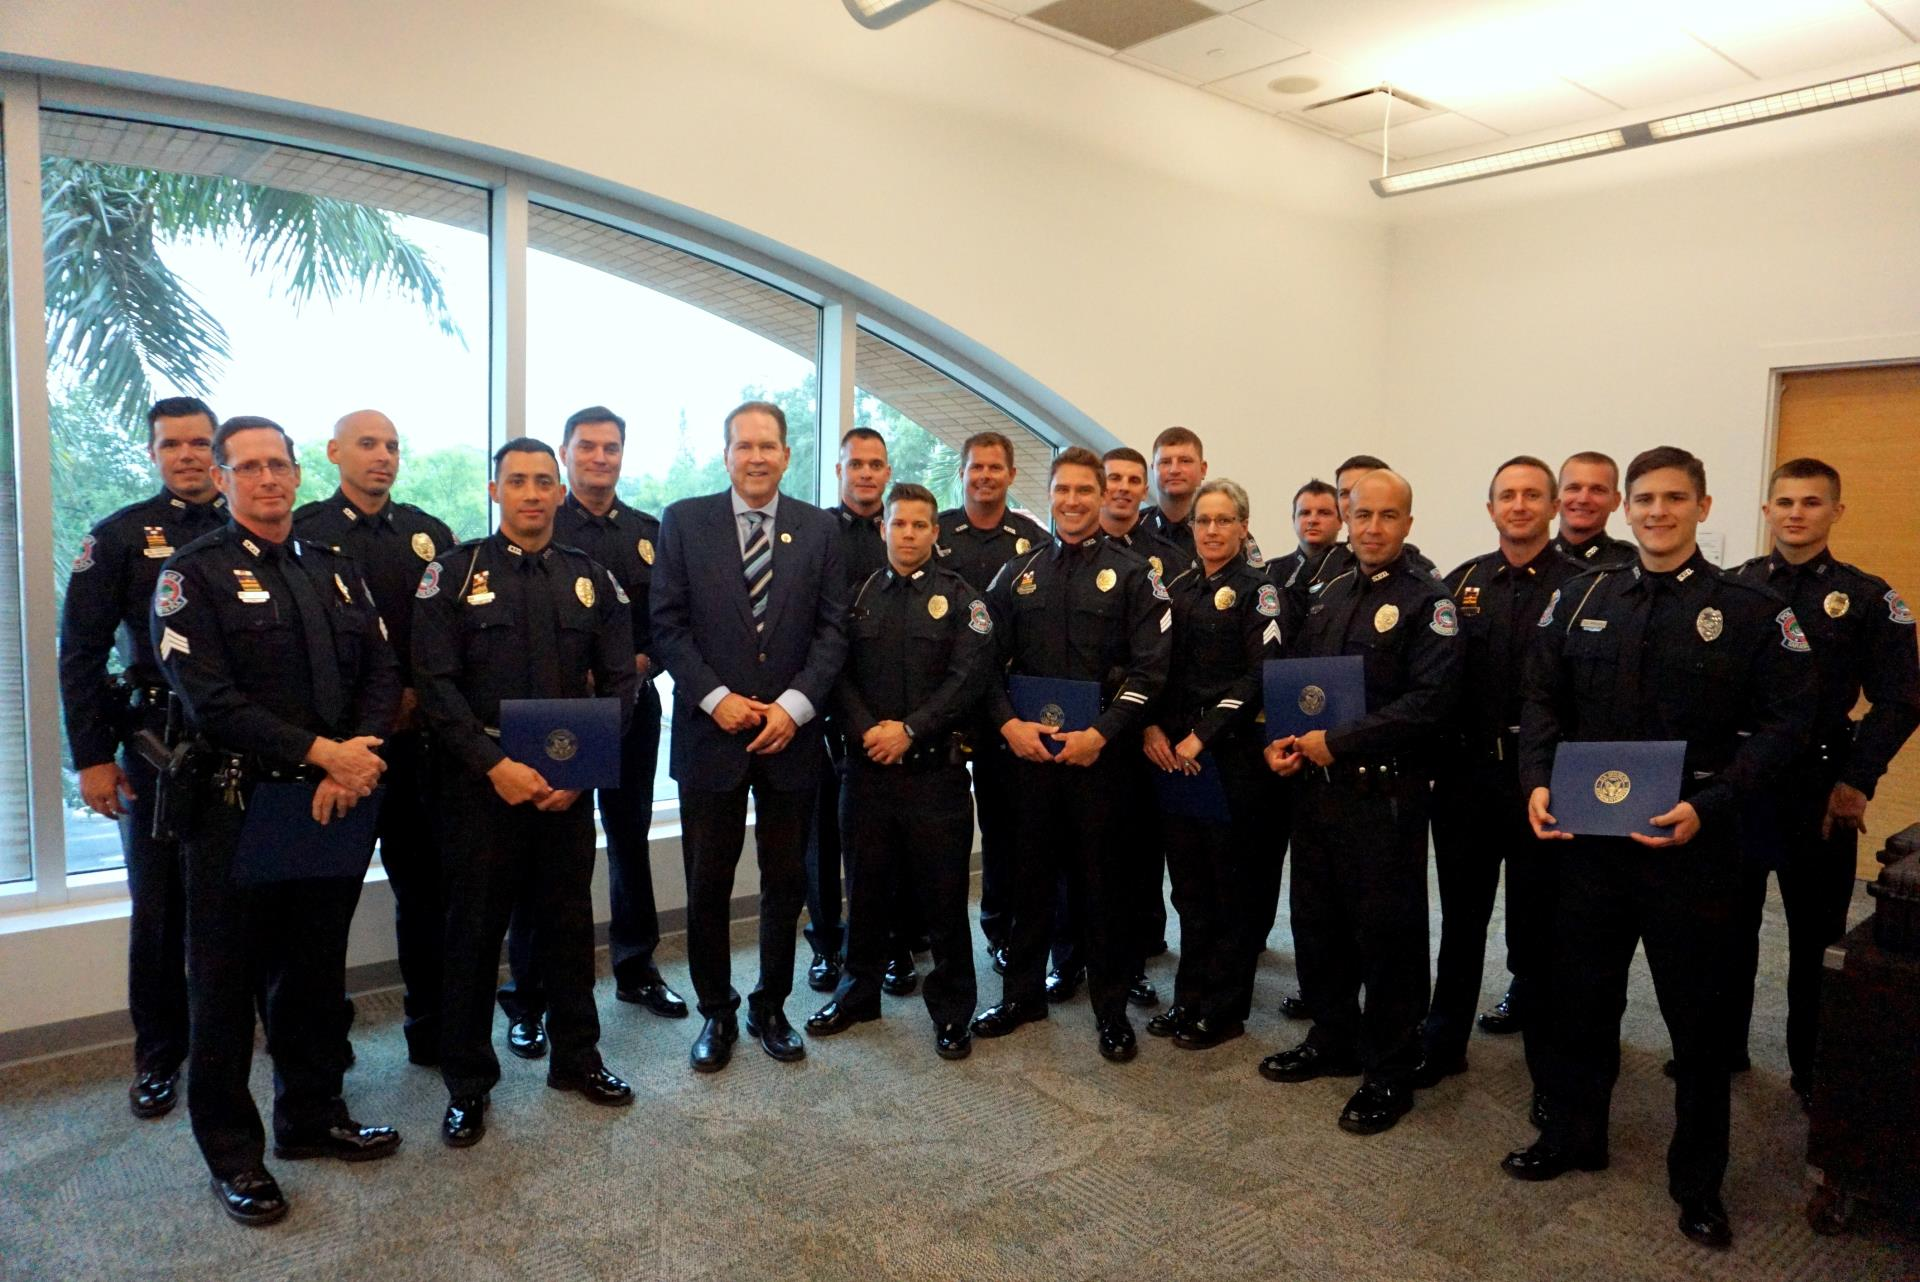 Sarasota Police Honored at 16th District Congressional Law Enforcement Awards